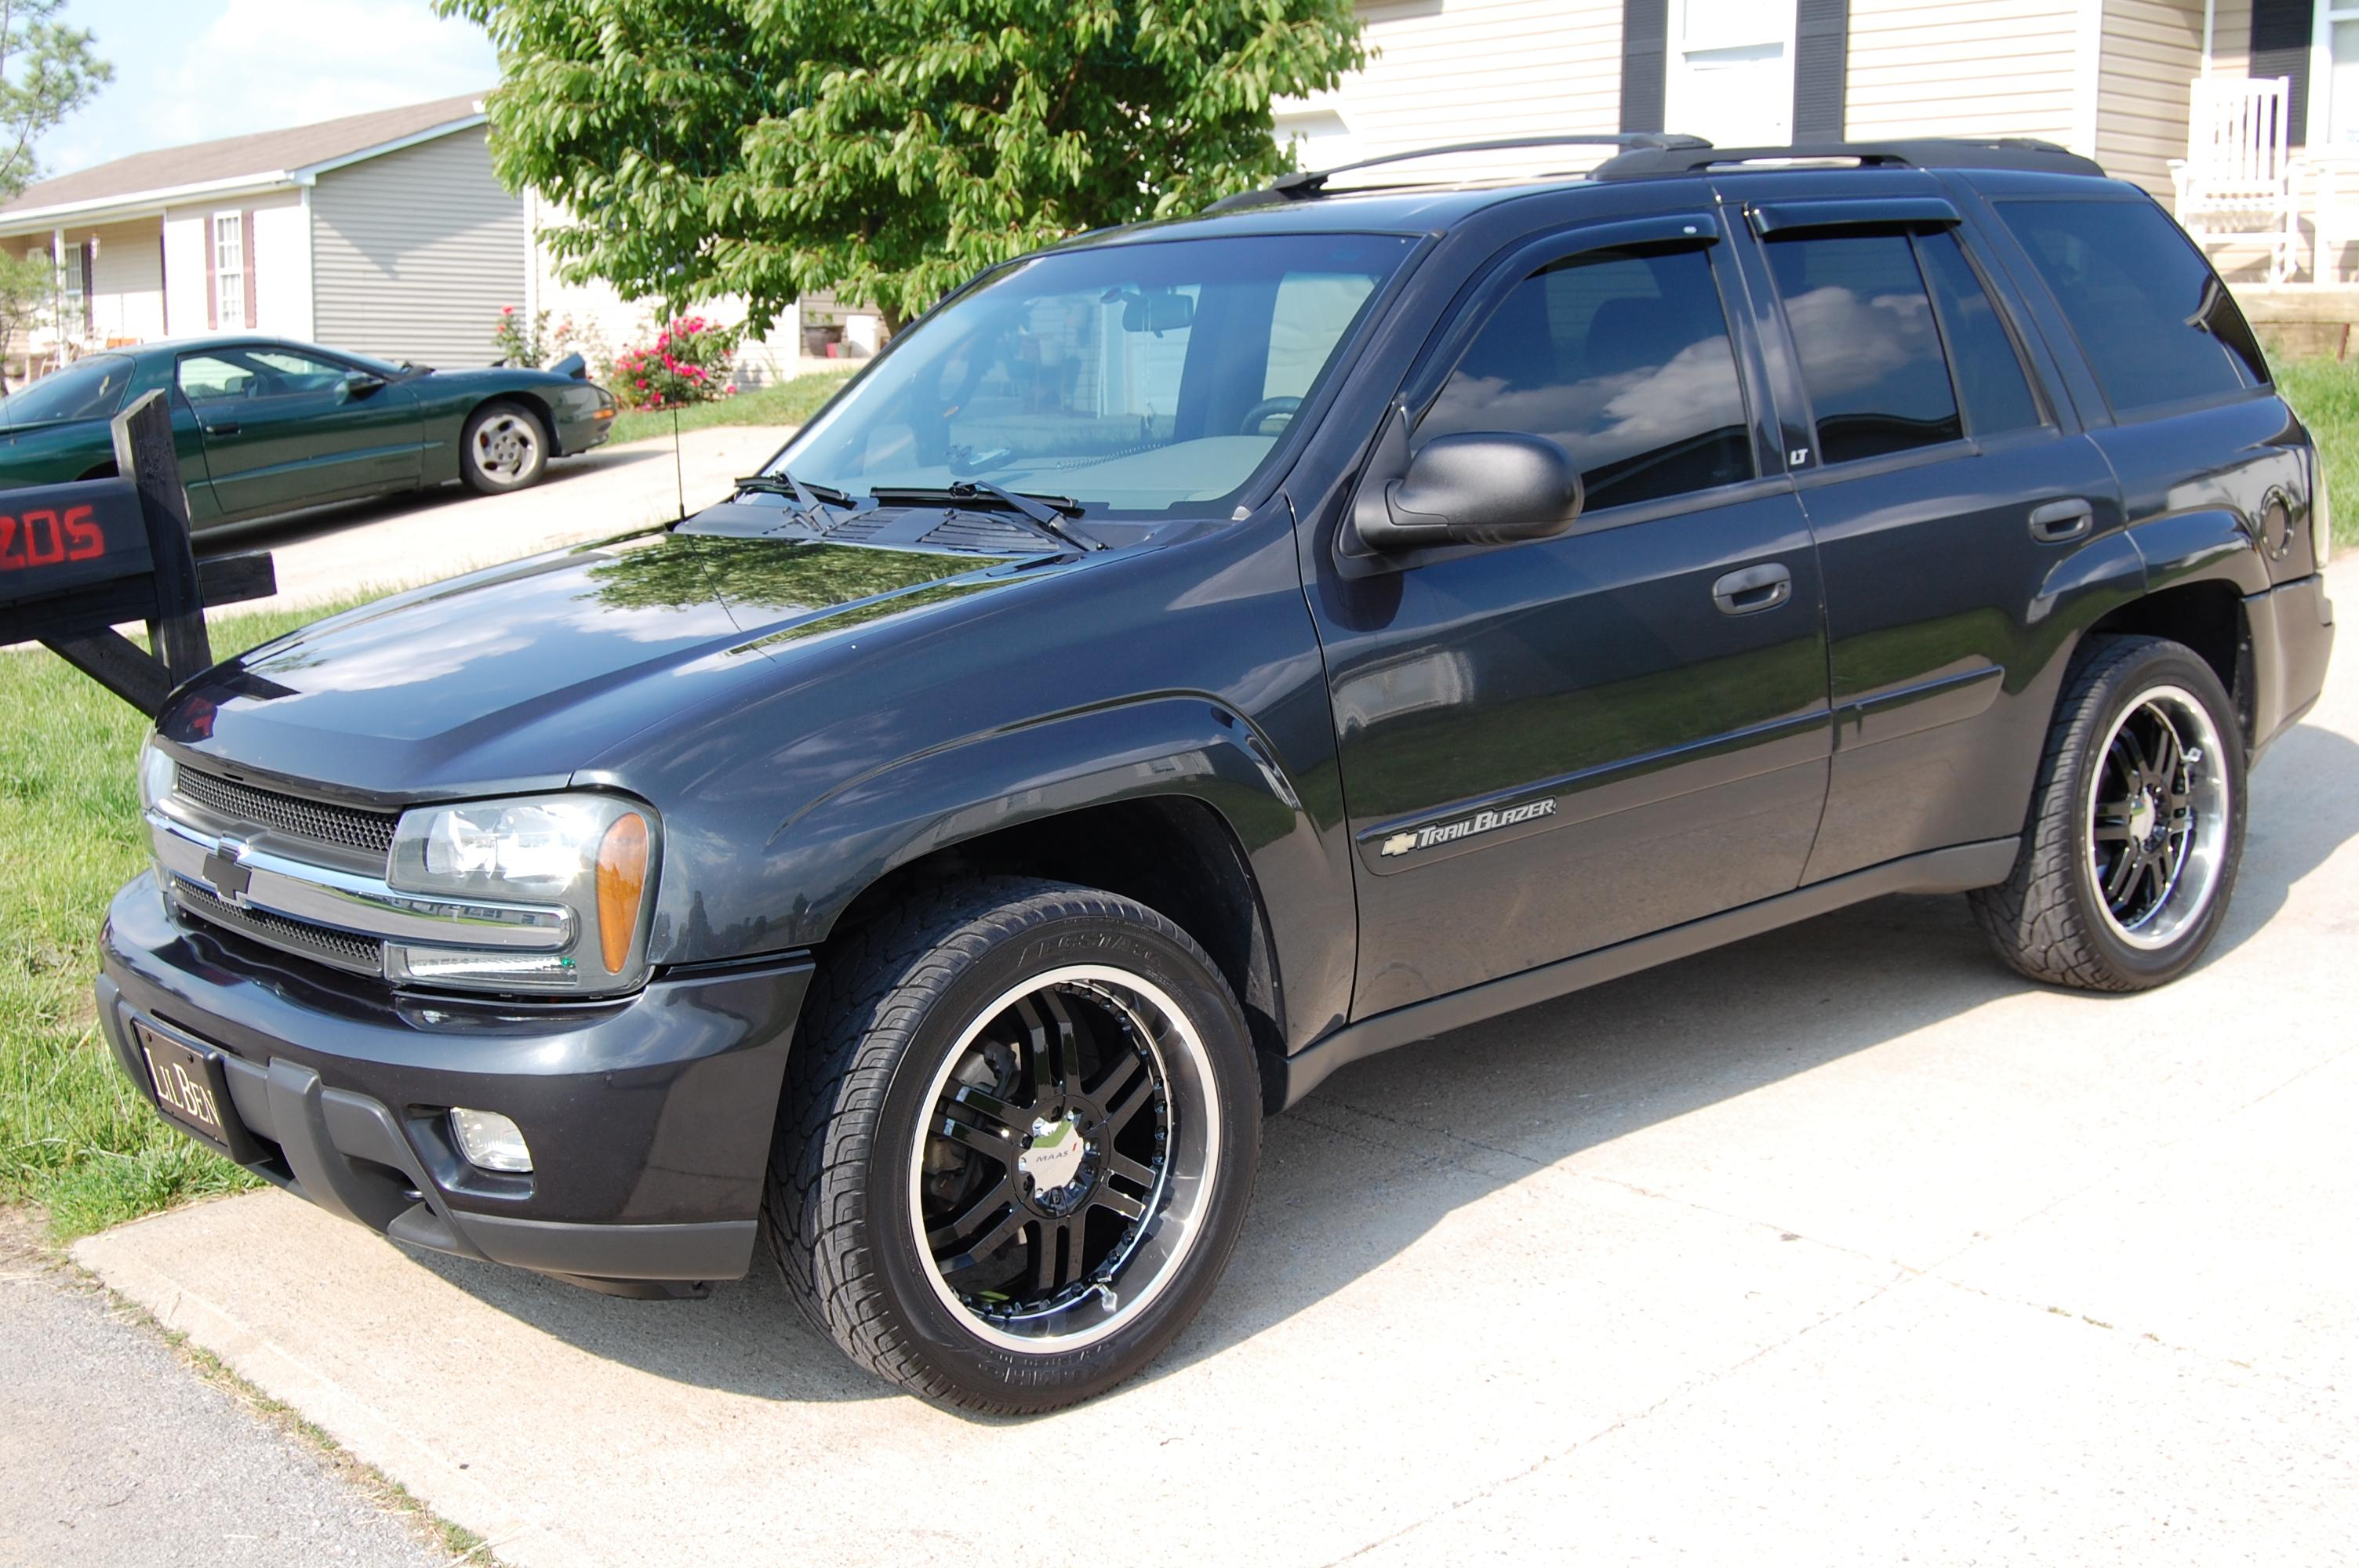 Jabali 2003 chevrolet trailblazer